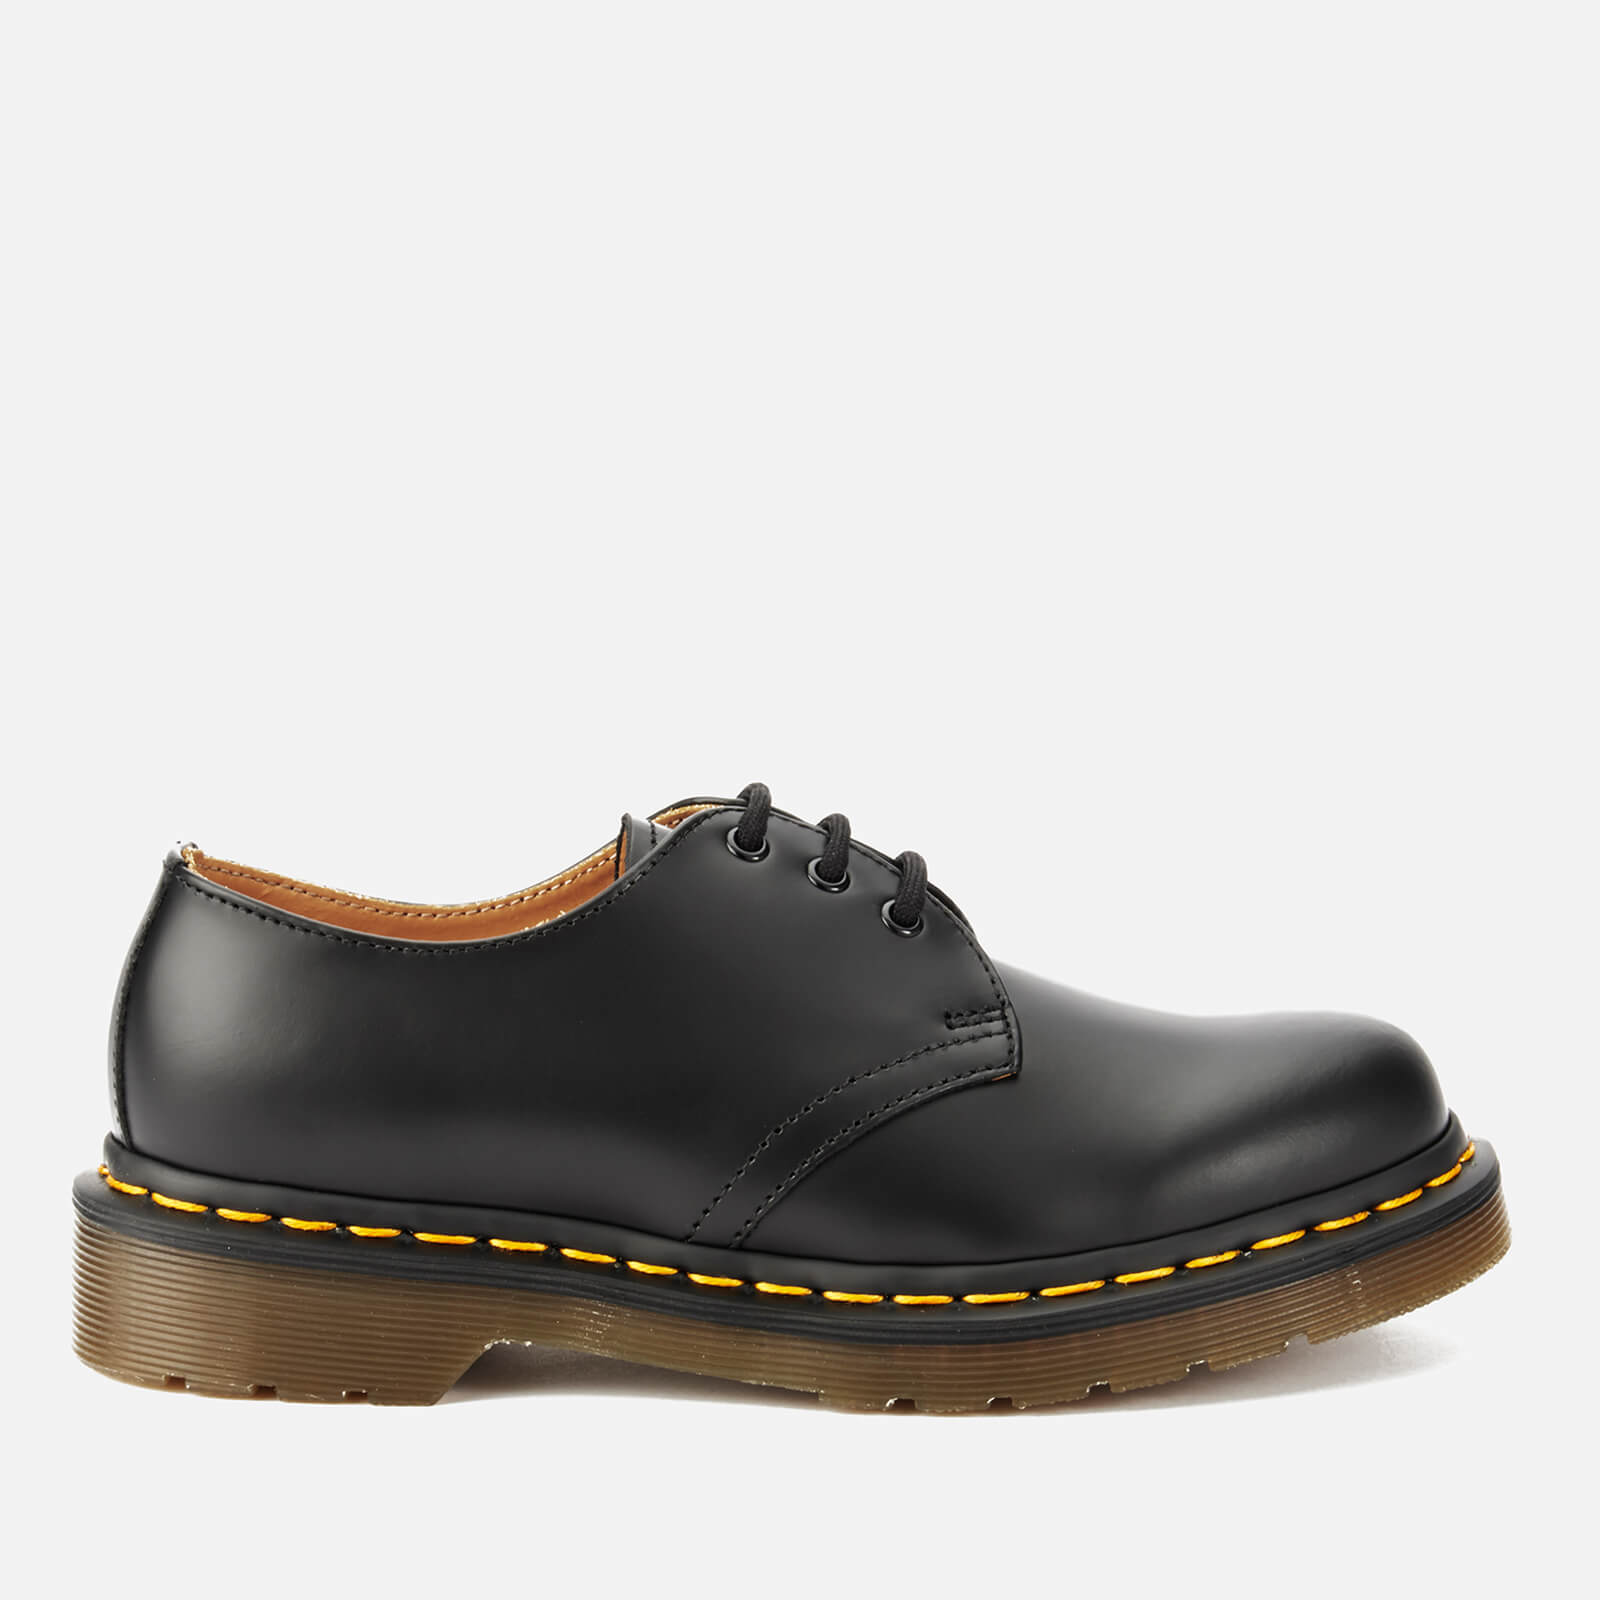 Dr Martens 1461 Smooth Leather 3 Eye Shoes Black Uk 8